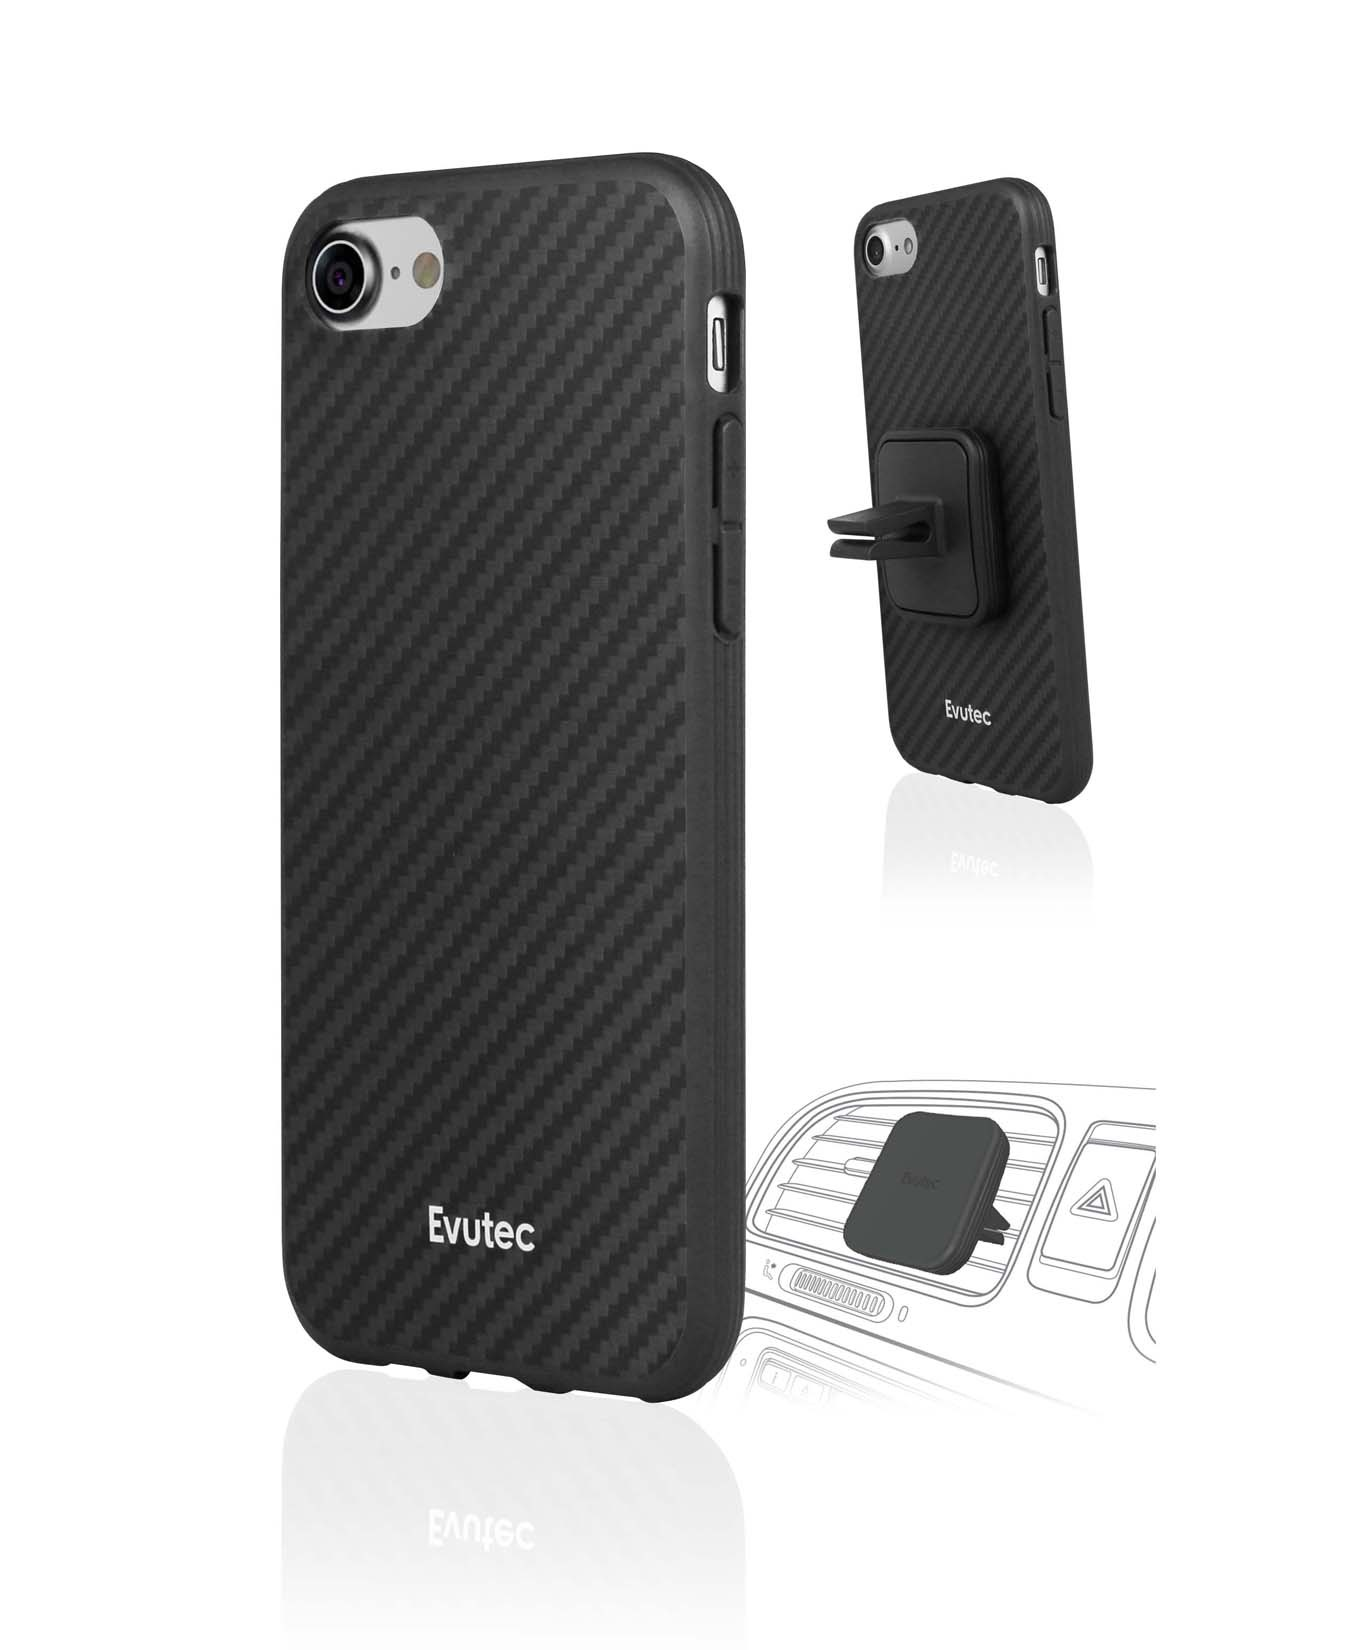 Made for Apple iPhone 8/7/6S/6 Plus Case, Evutec - Karbon AER Scratch Resistant [Reinforced Kevlar Fibers] Hard Case w/ Vent Mount [Black] by Evutec